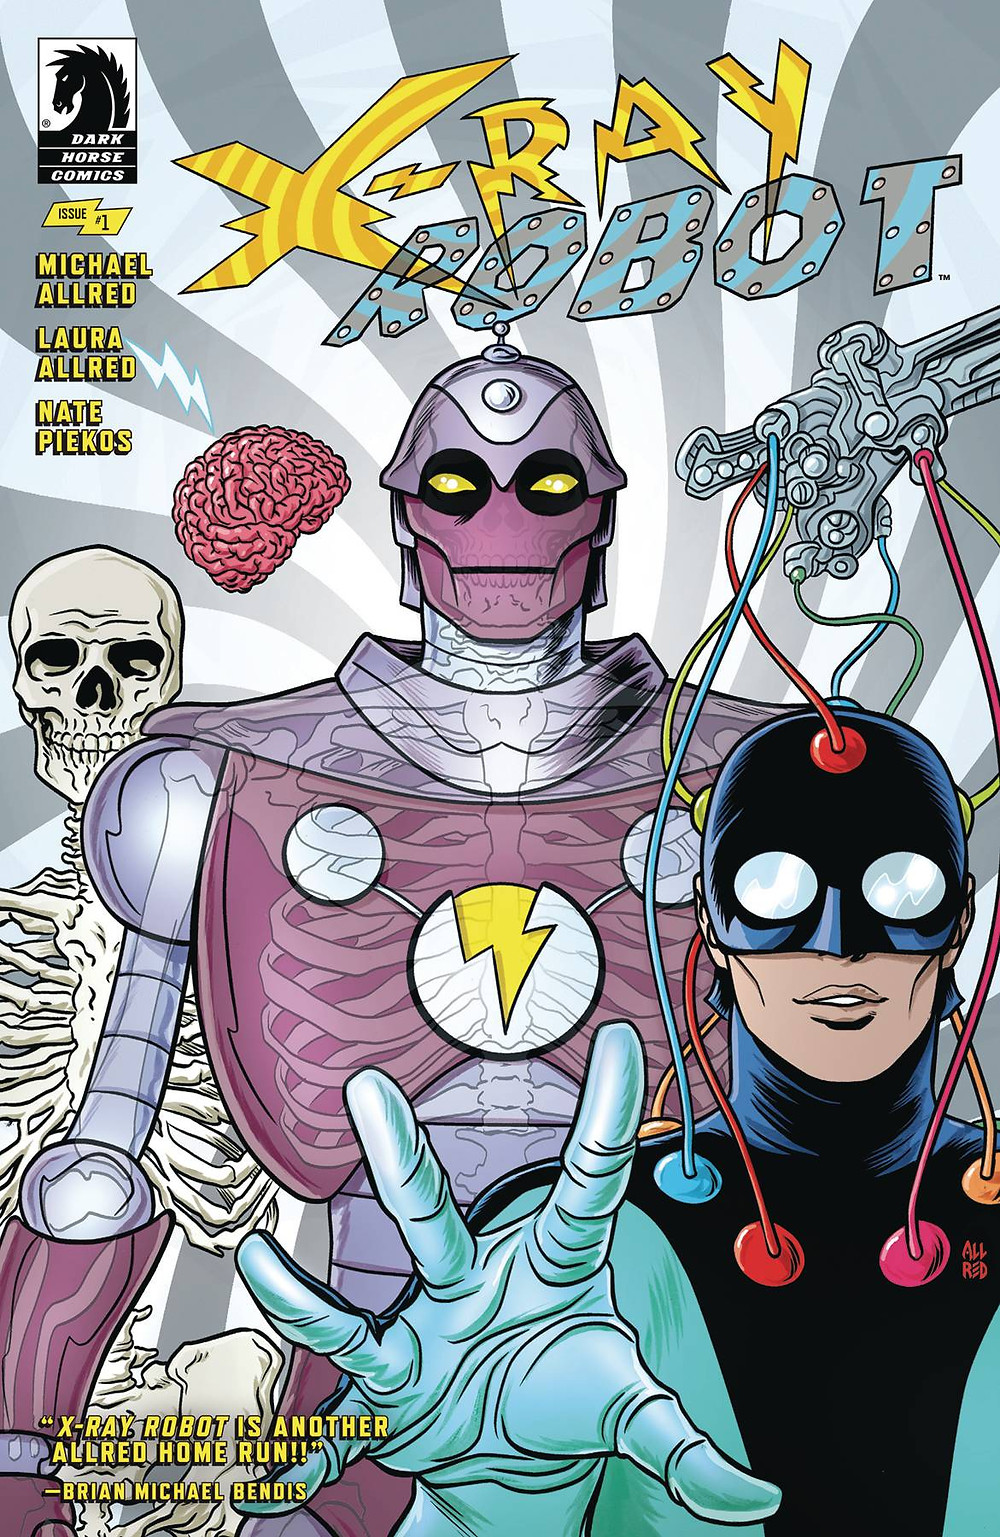 Cover of X-Ray Robot #1